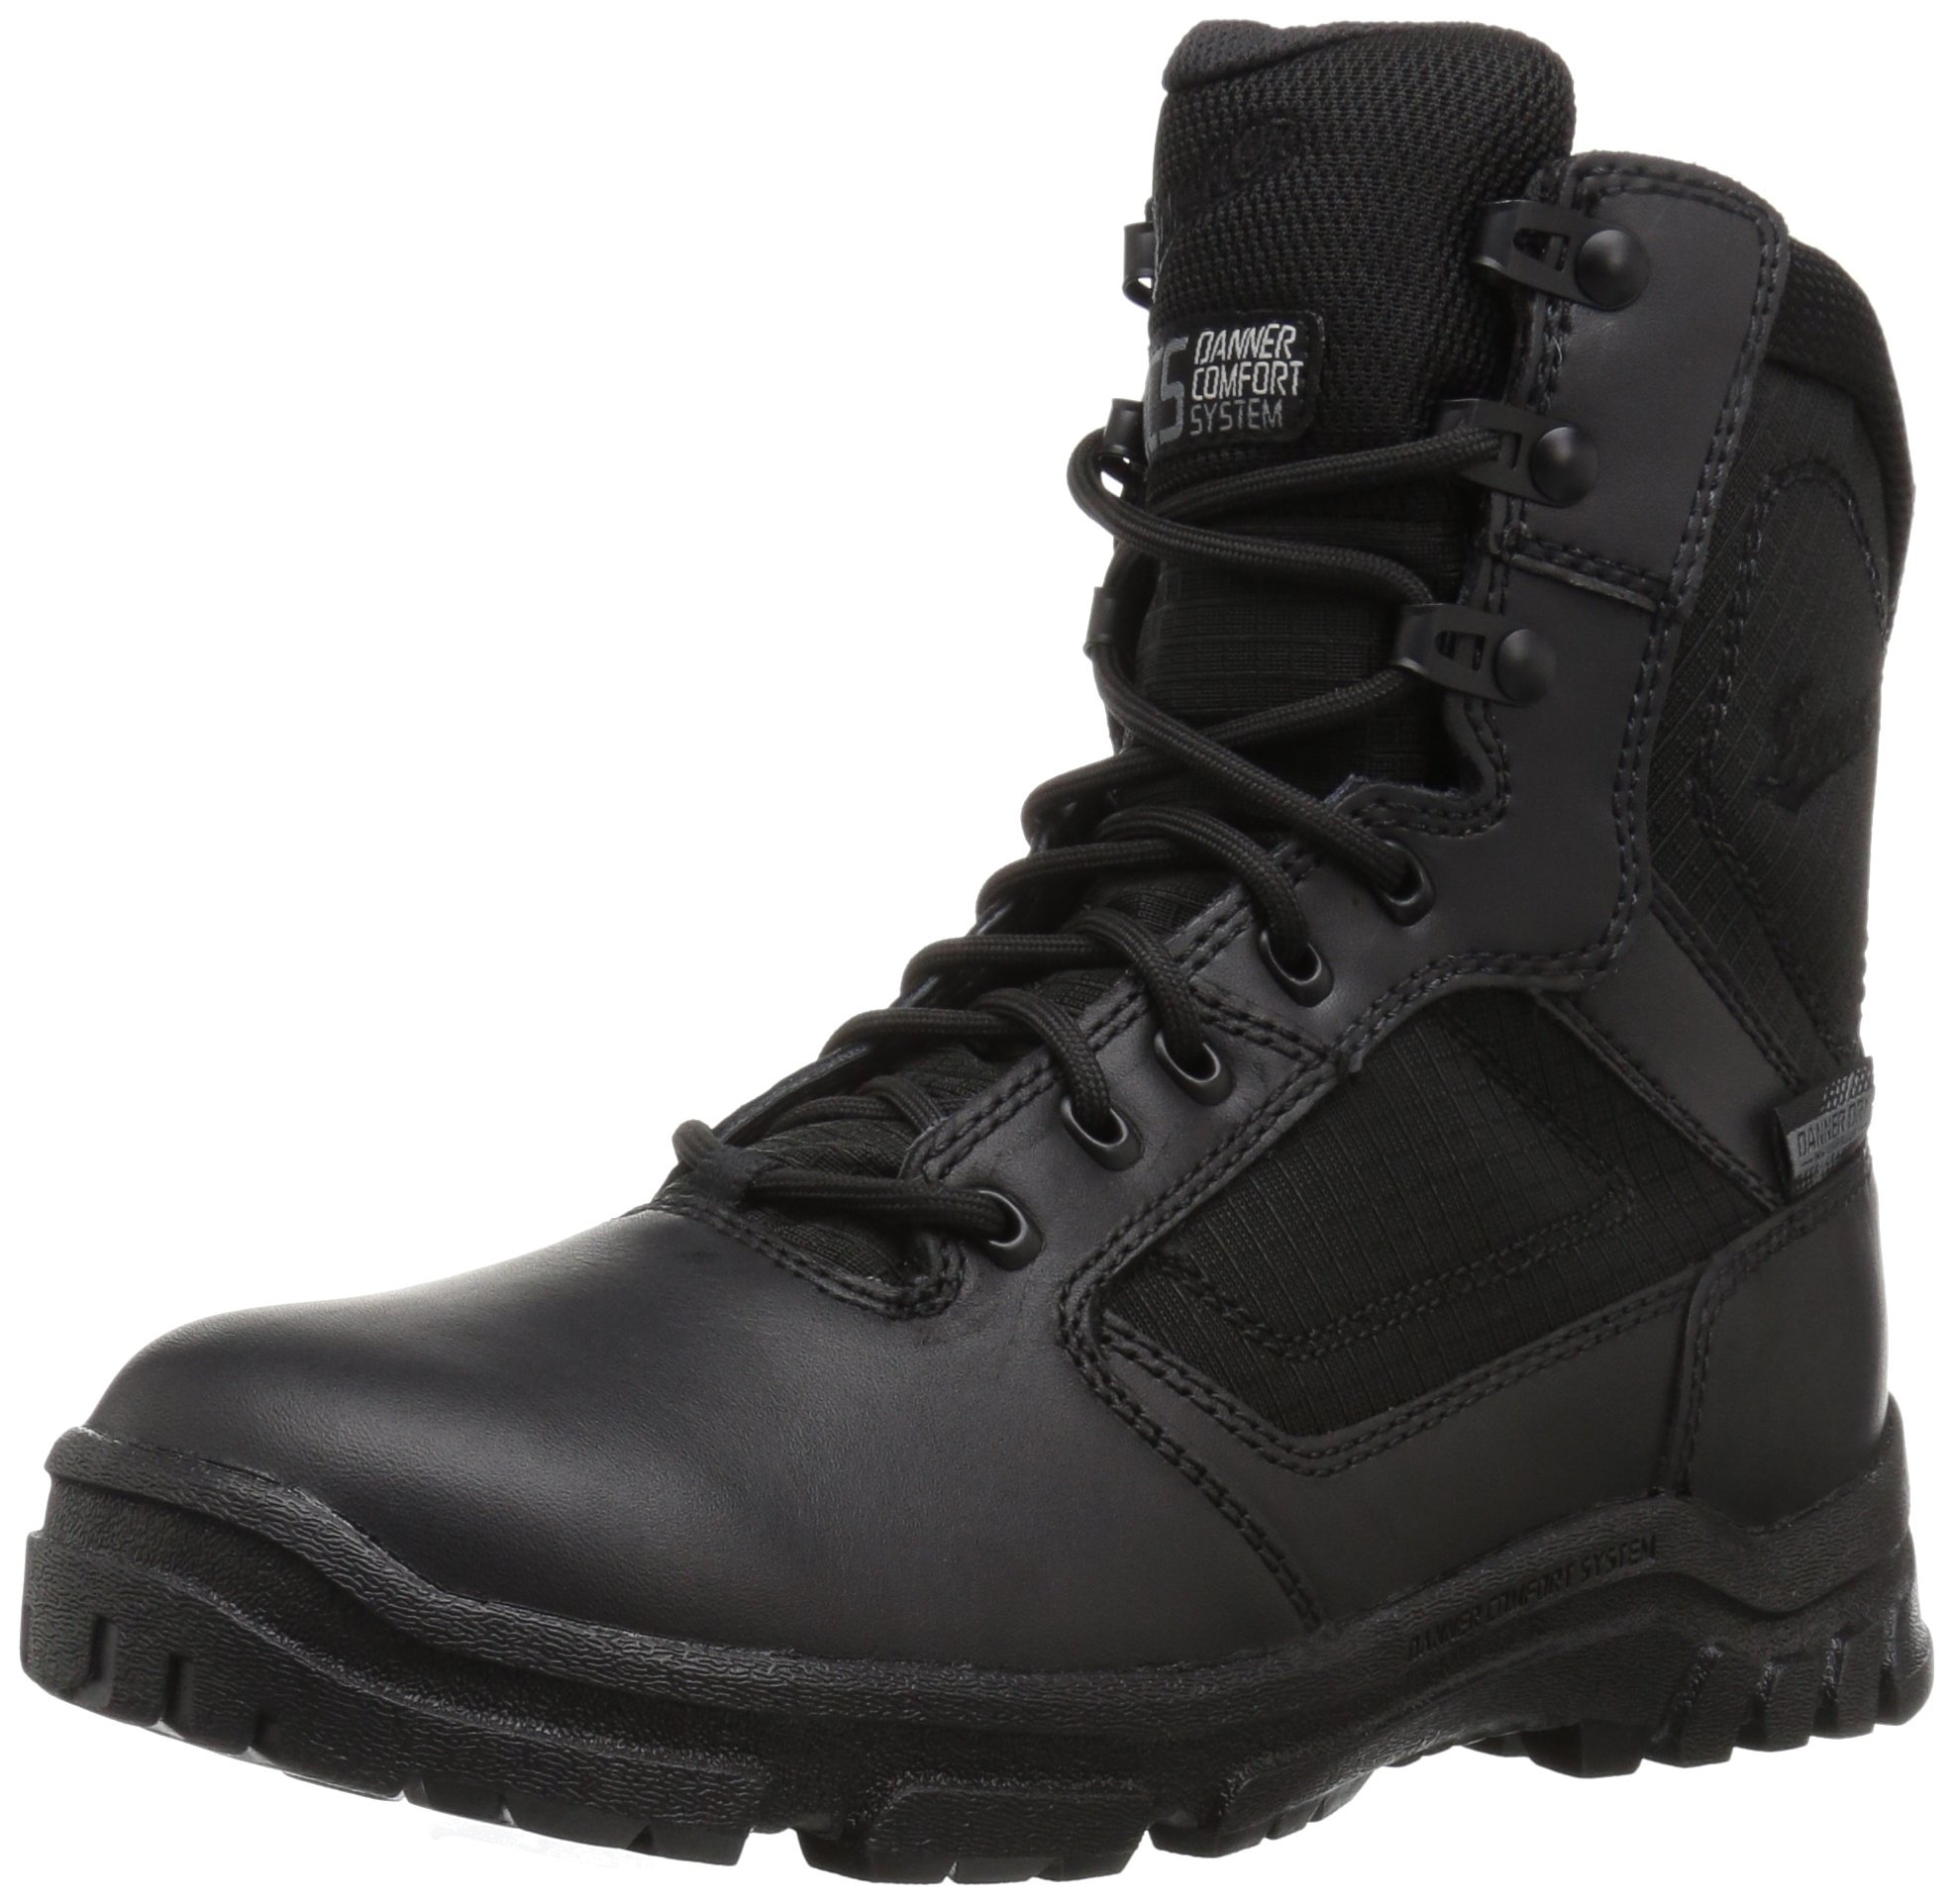 55dbf81e3cc Danner Usmc Boots Top Deals & Lowest Price | SuperOffers.com